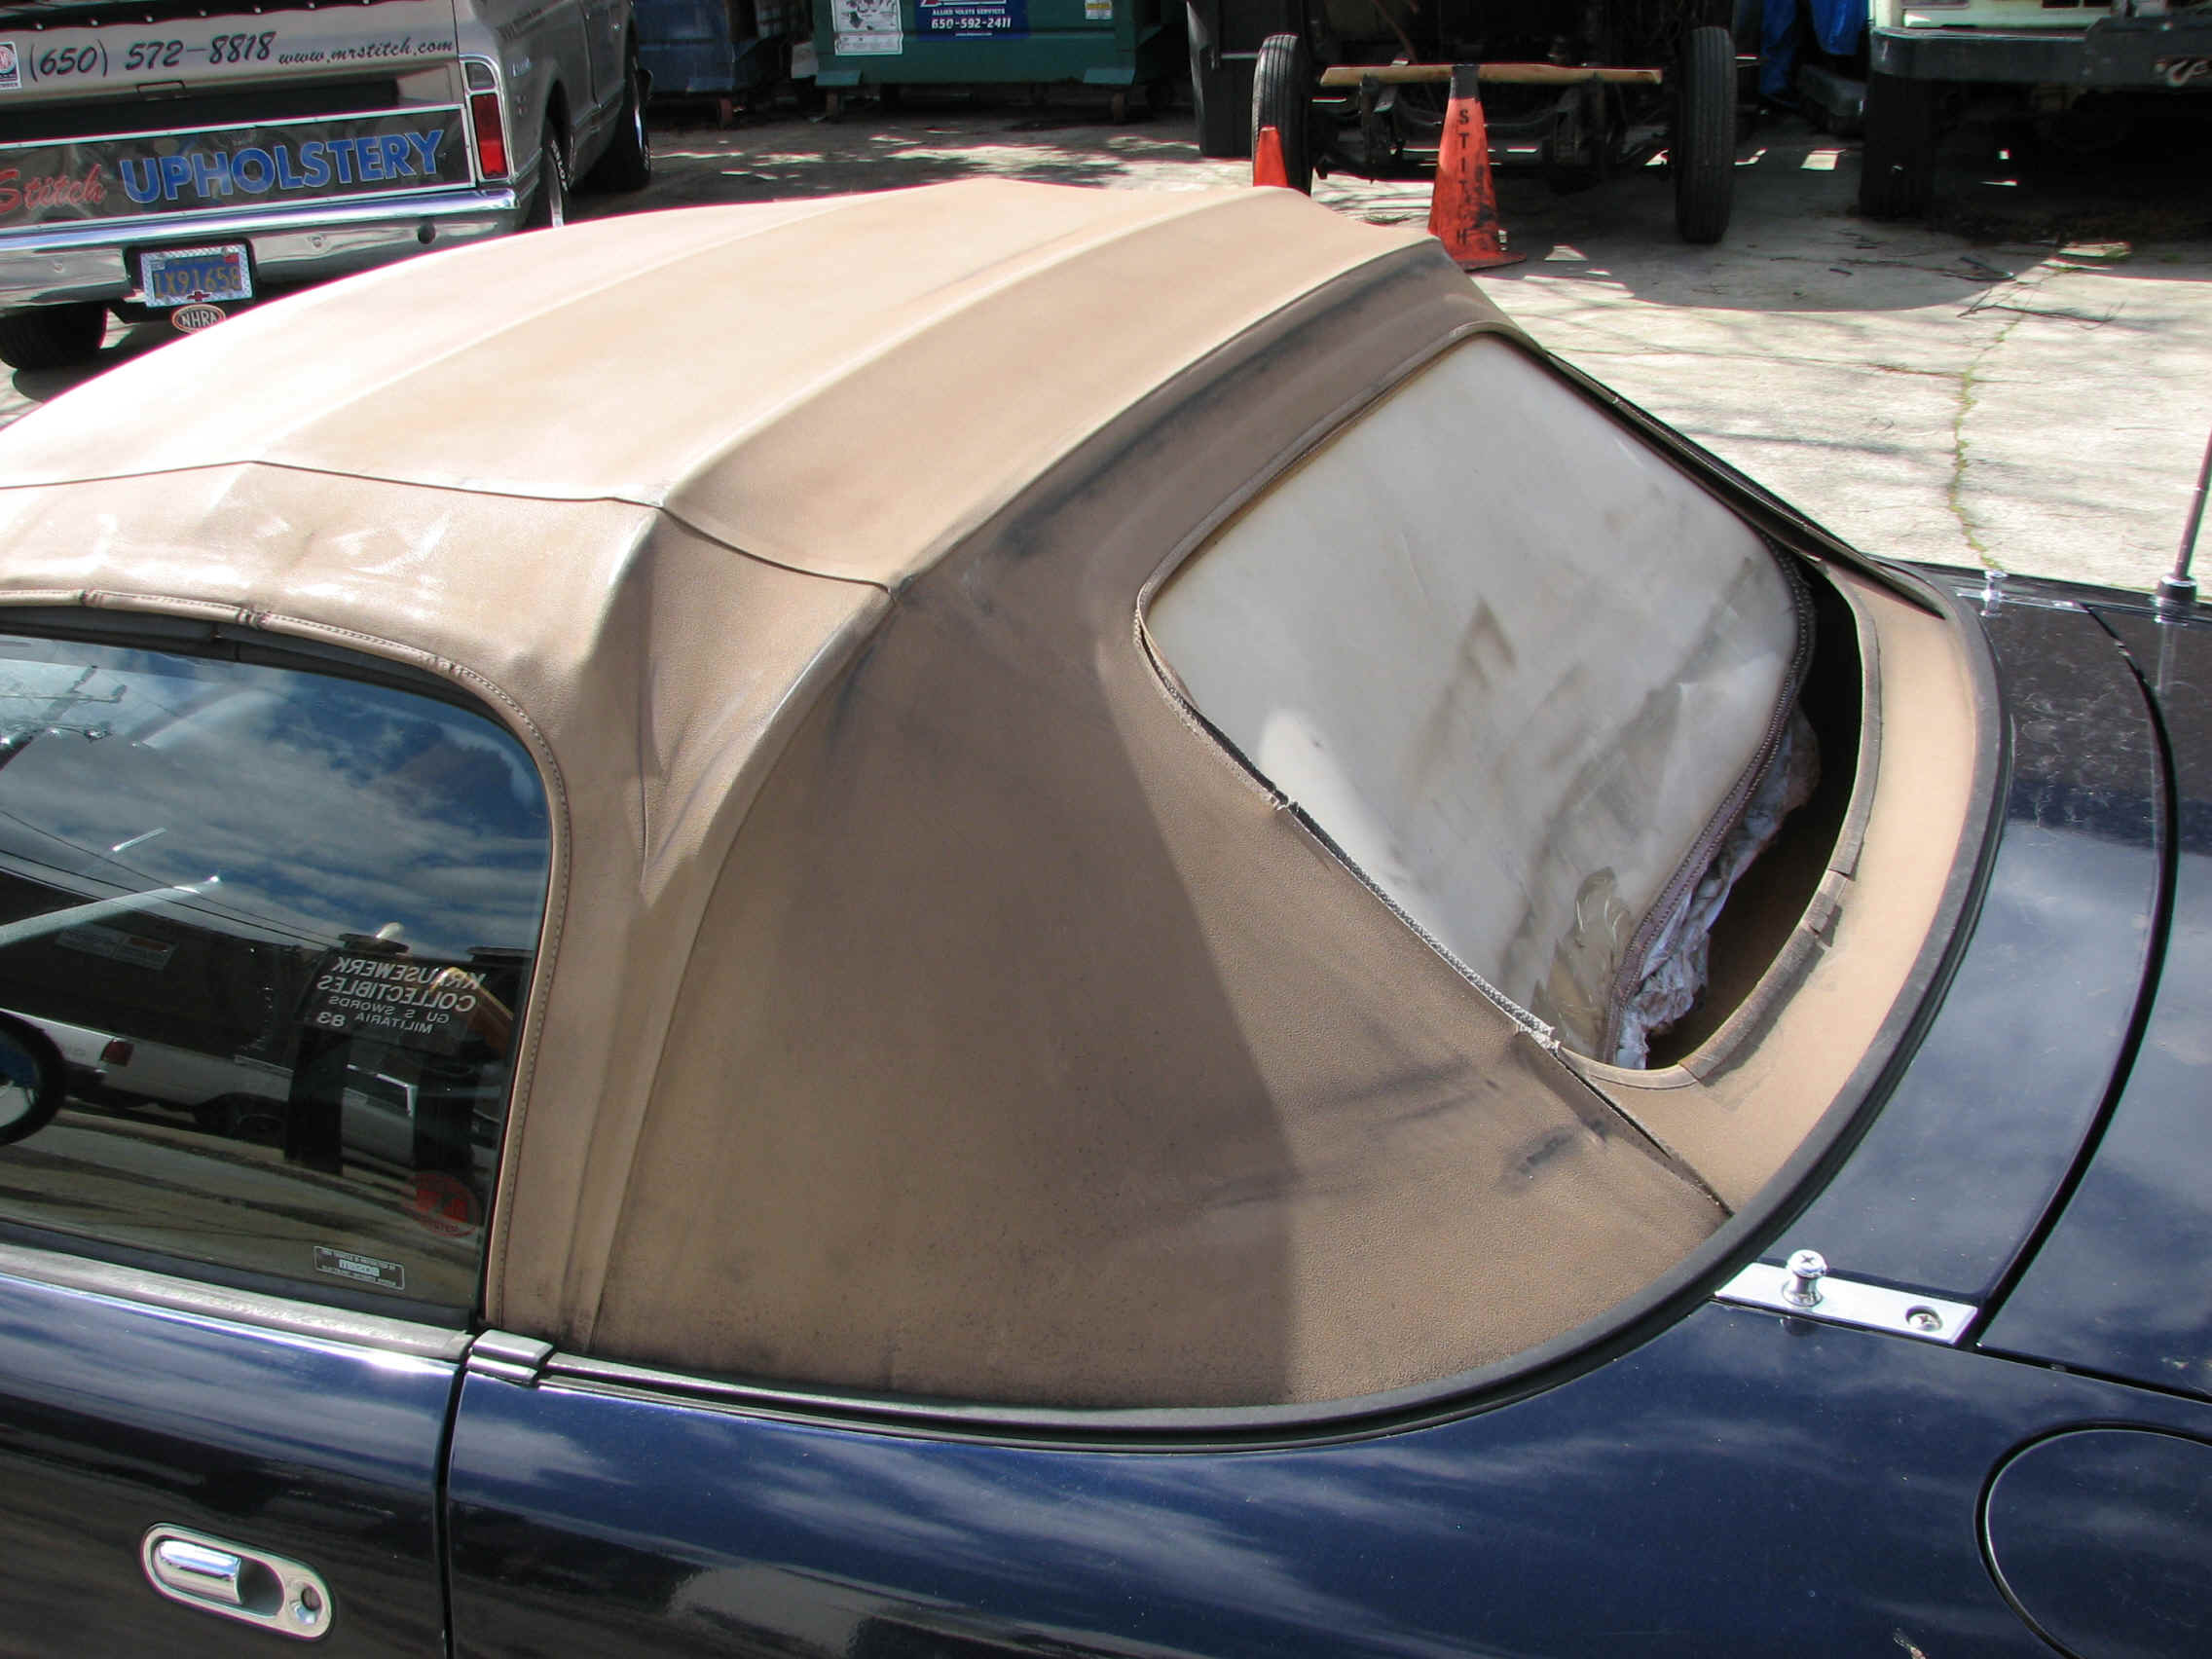 Before old plastic window mazda miata 97 old top plastic window 0 jpg 1702189 bytes